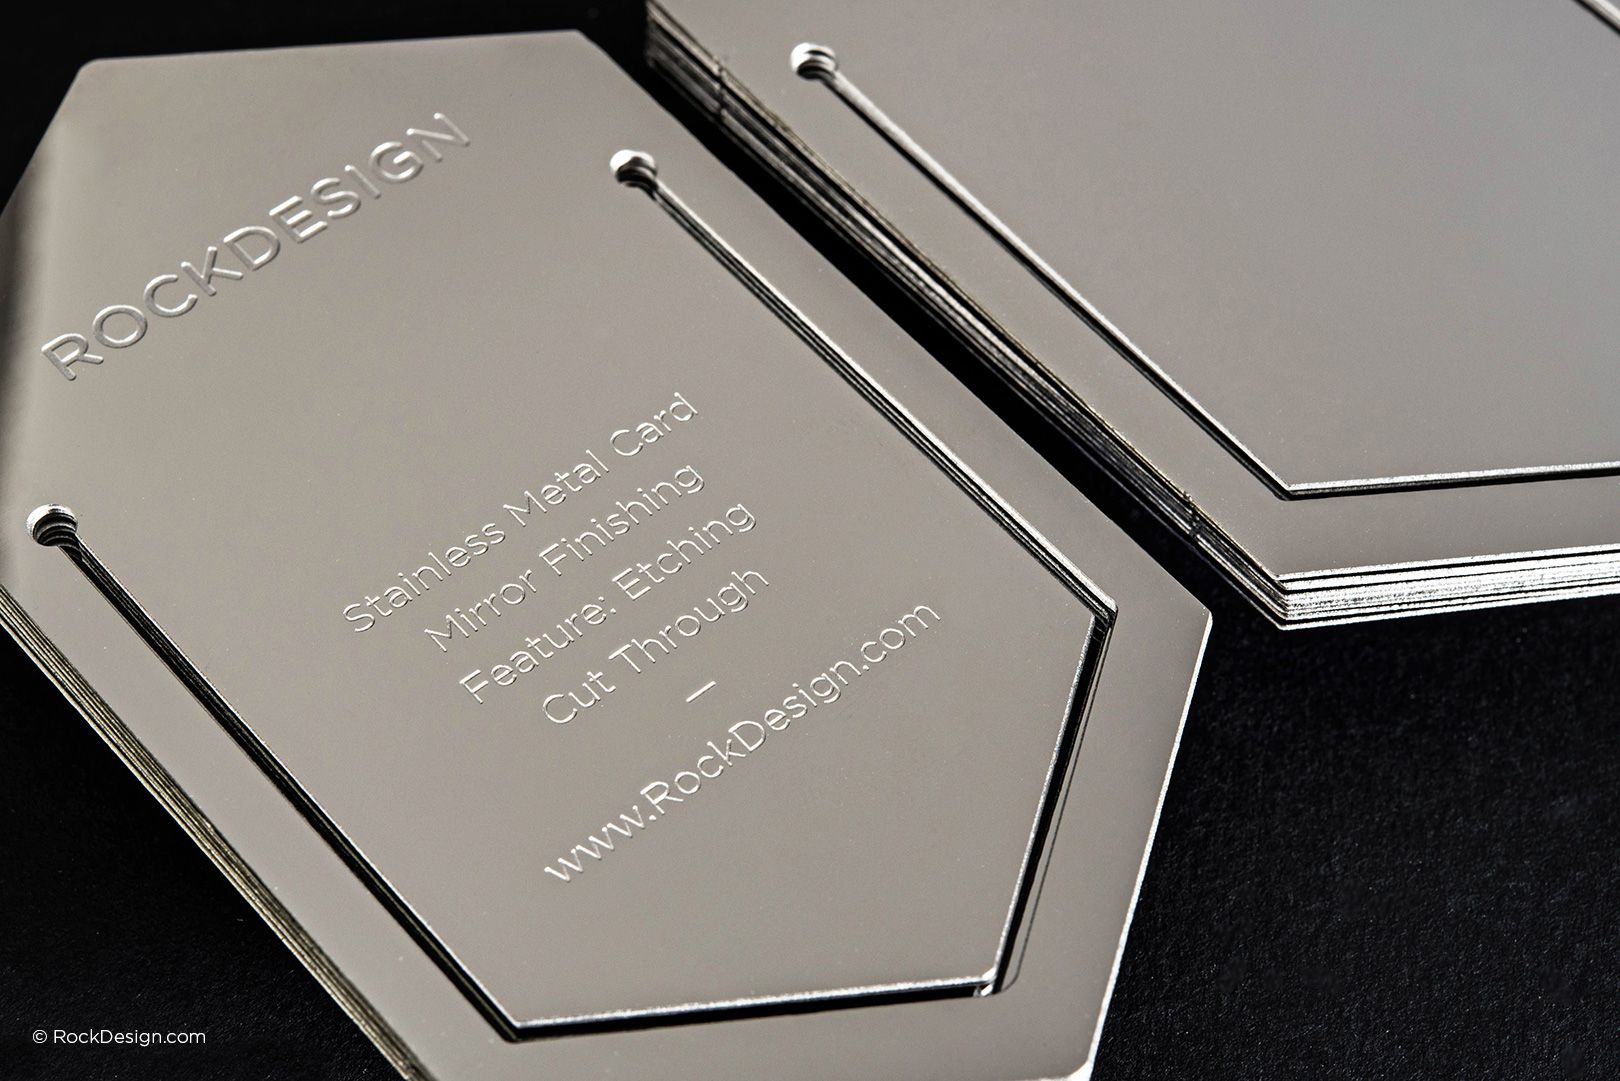 High end stainless steel bookmark business card - Rock Design ...